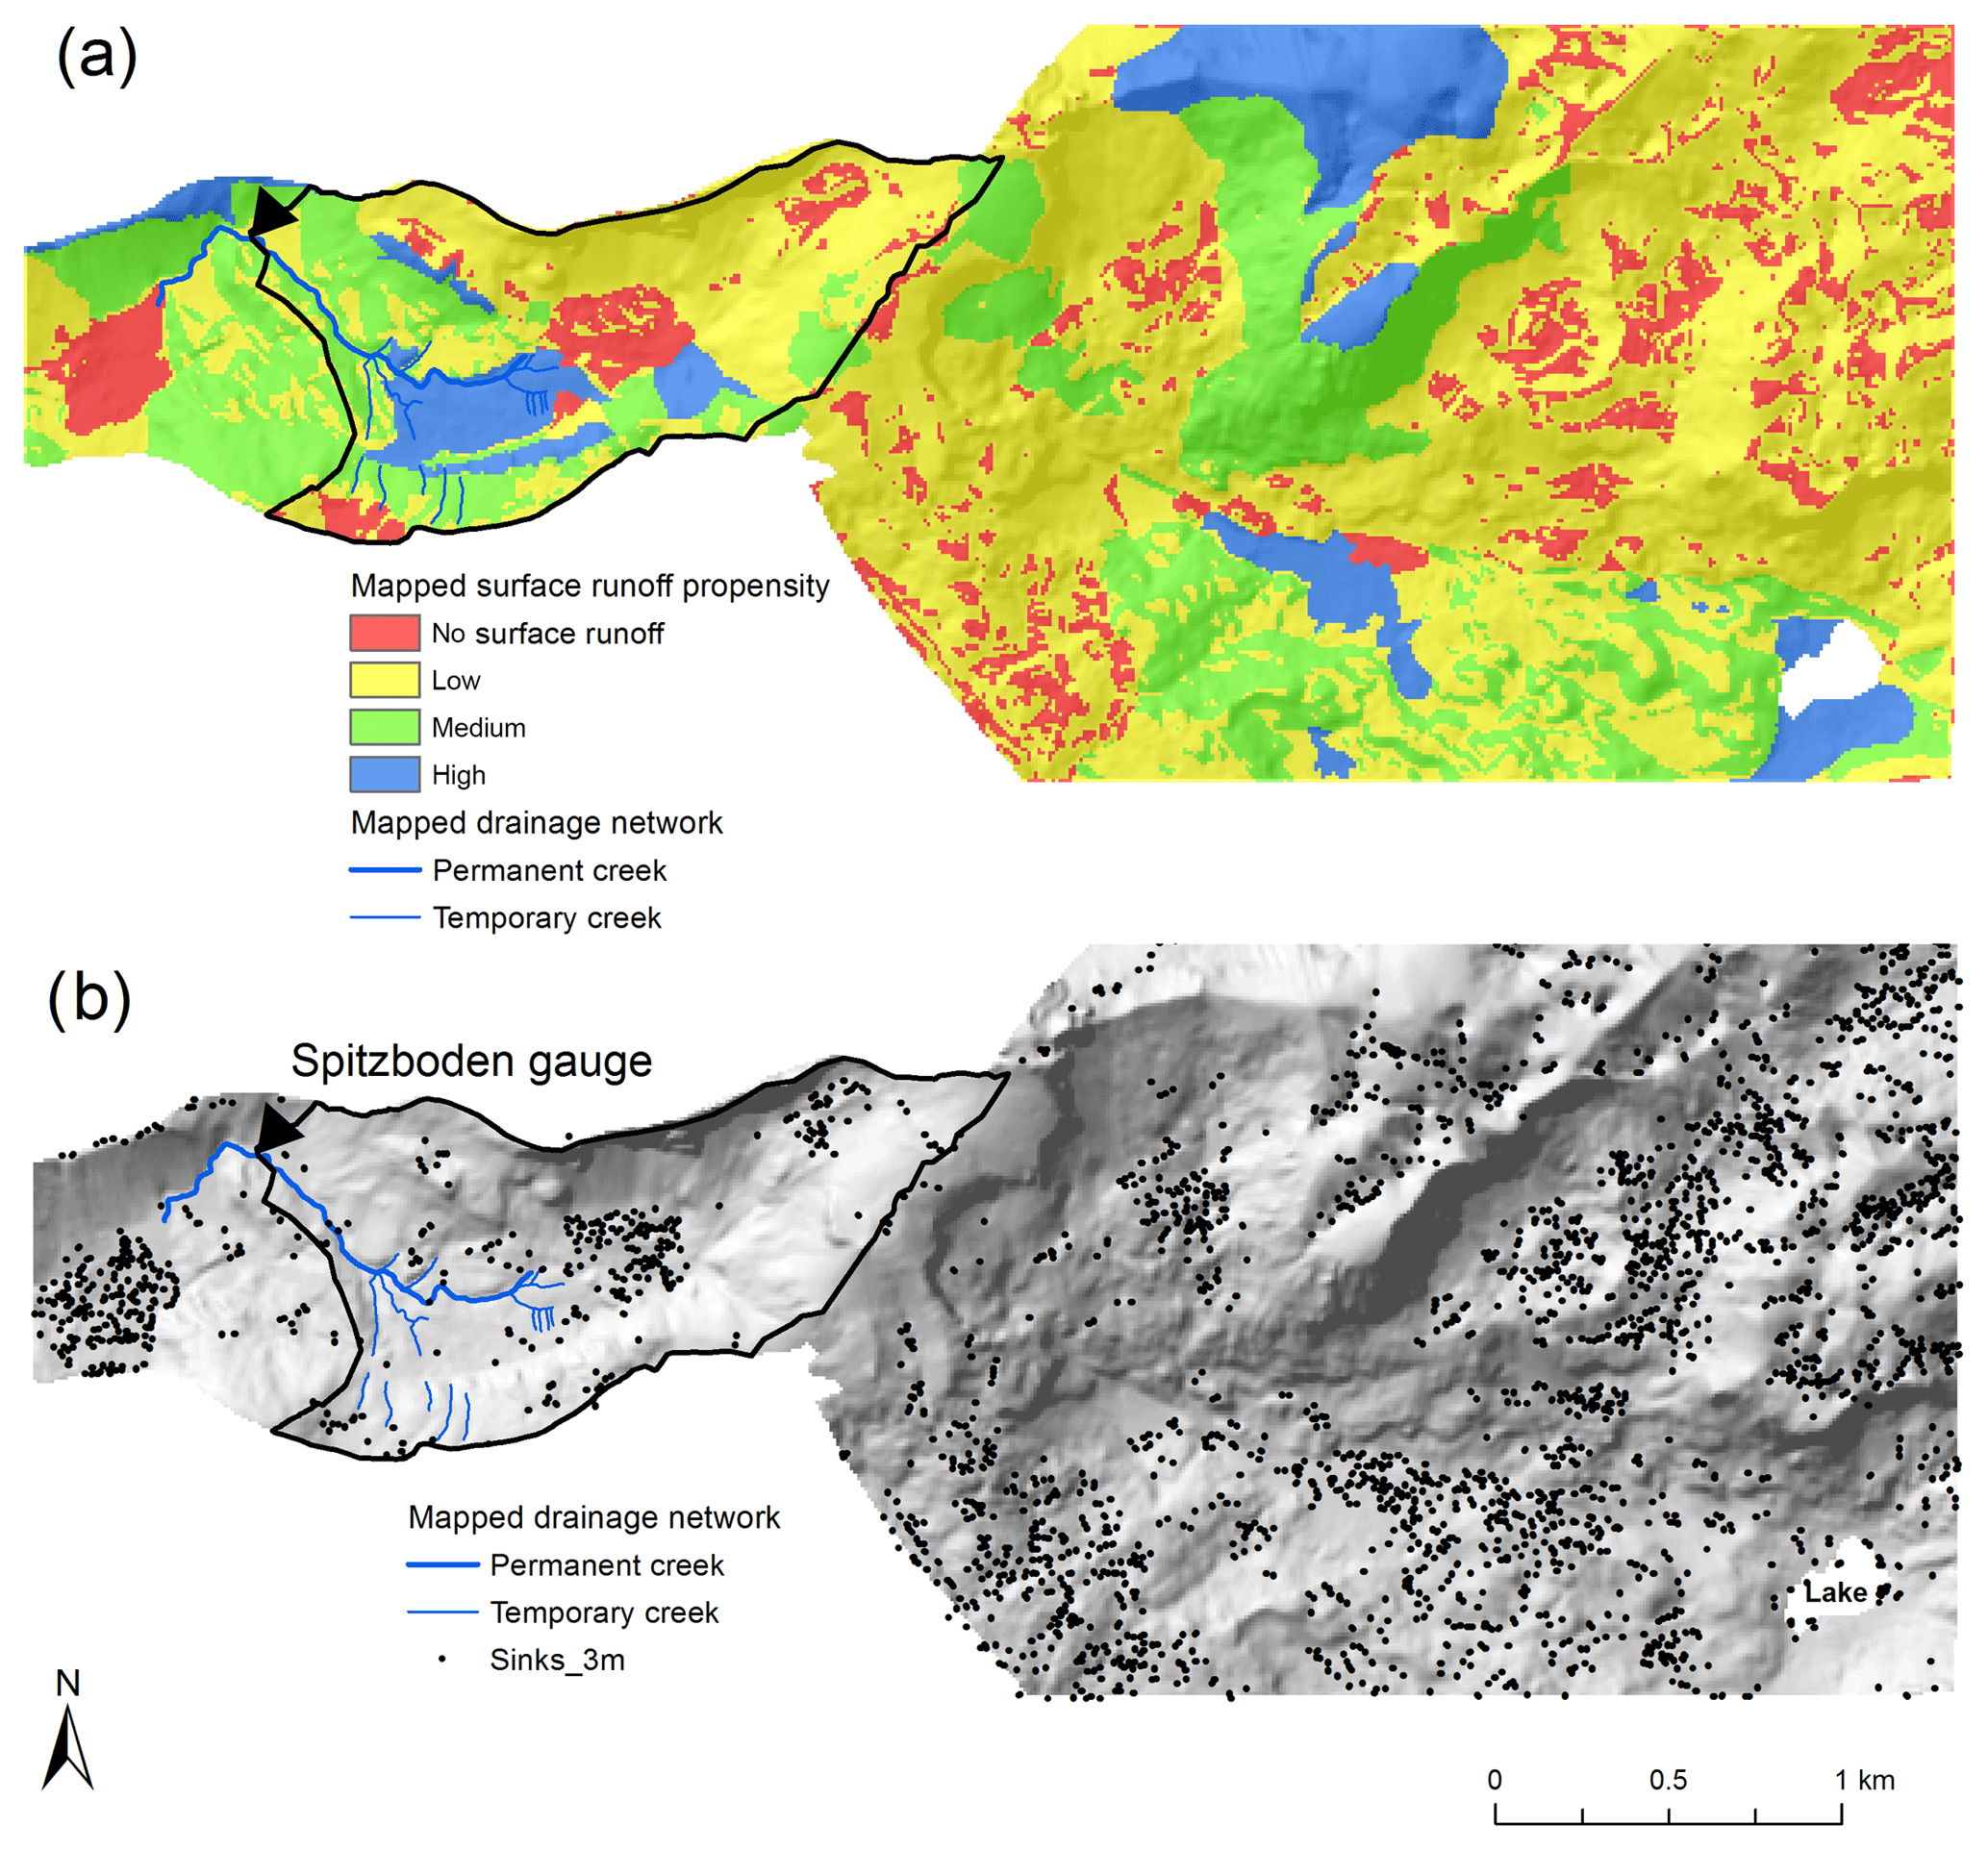 HESS - A propensity index for surface runoff on a karst plateau